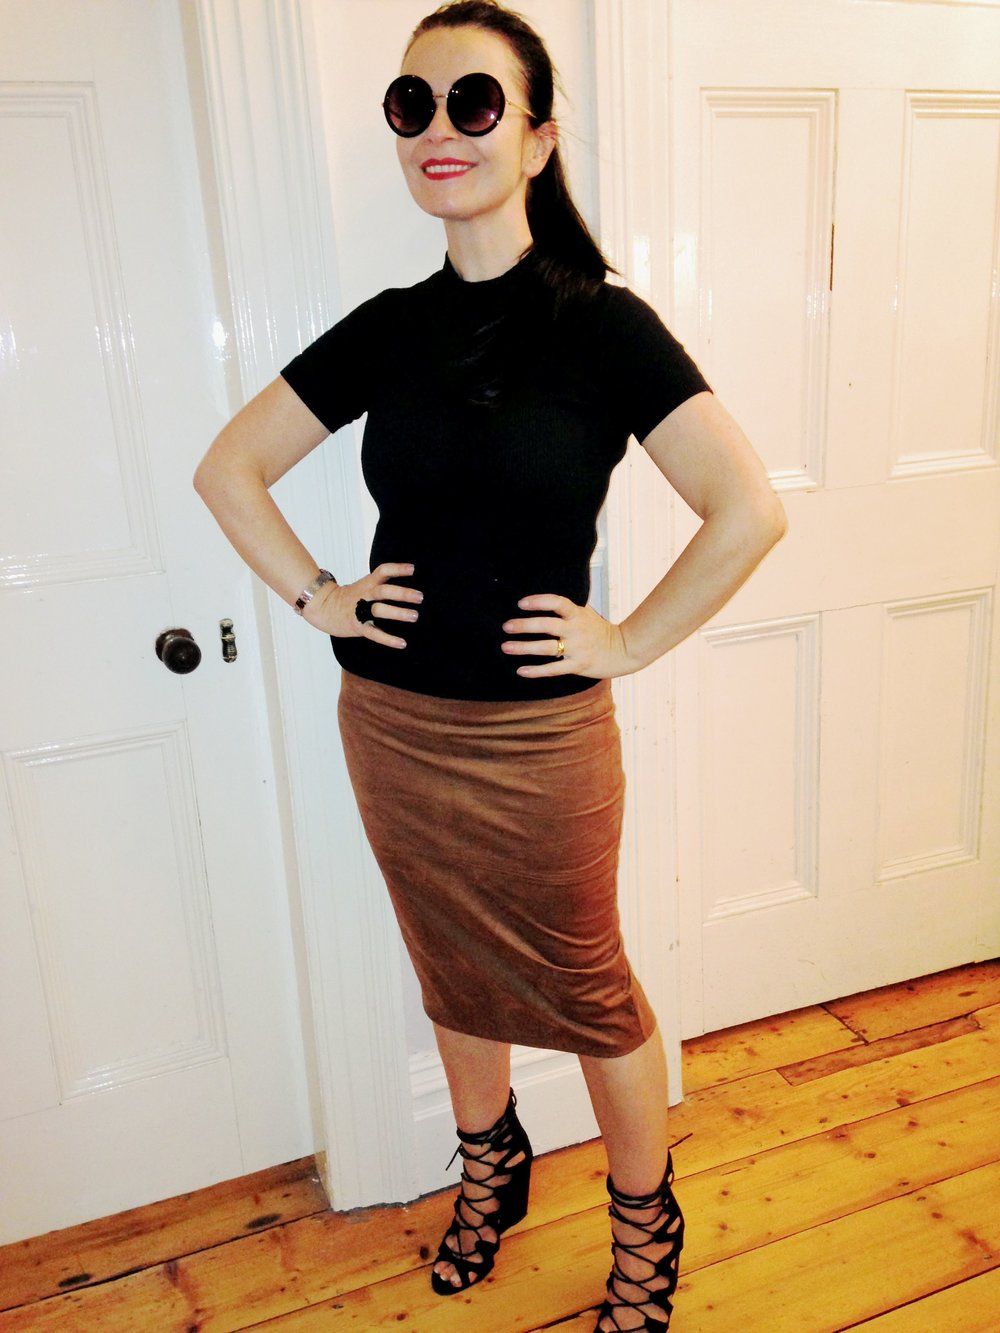 Cool 90s vibe! Crew neck polo worn with same Penneys pencil skirt in Brown this one bought in Mary St Dublin for €12. These are so comfy skirts. The shoes are another Penneys purchase €18 in Dundrum Town centre. These are gorgeous!